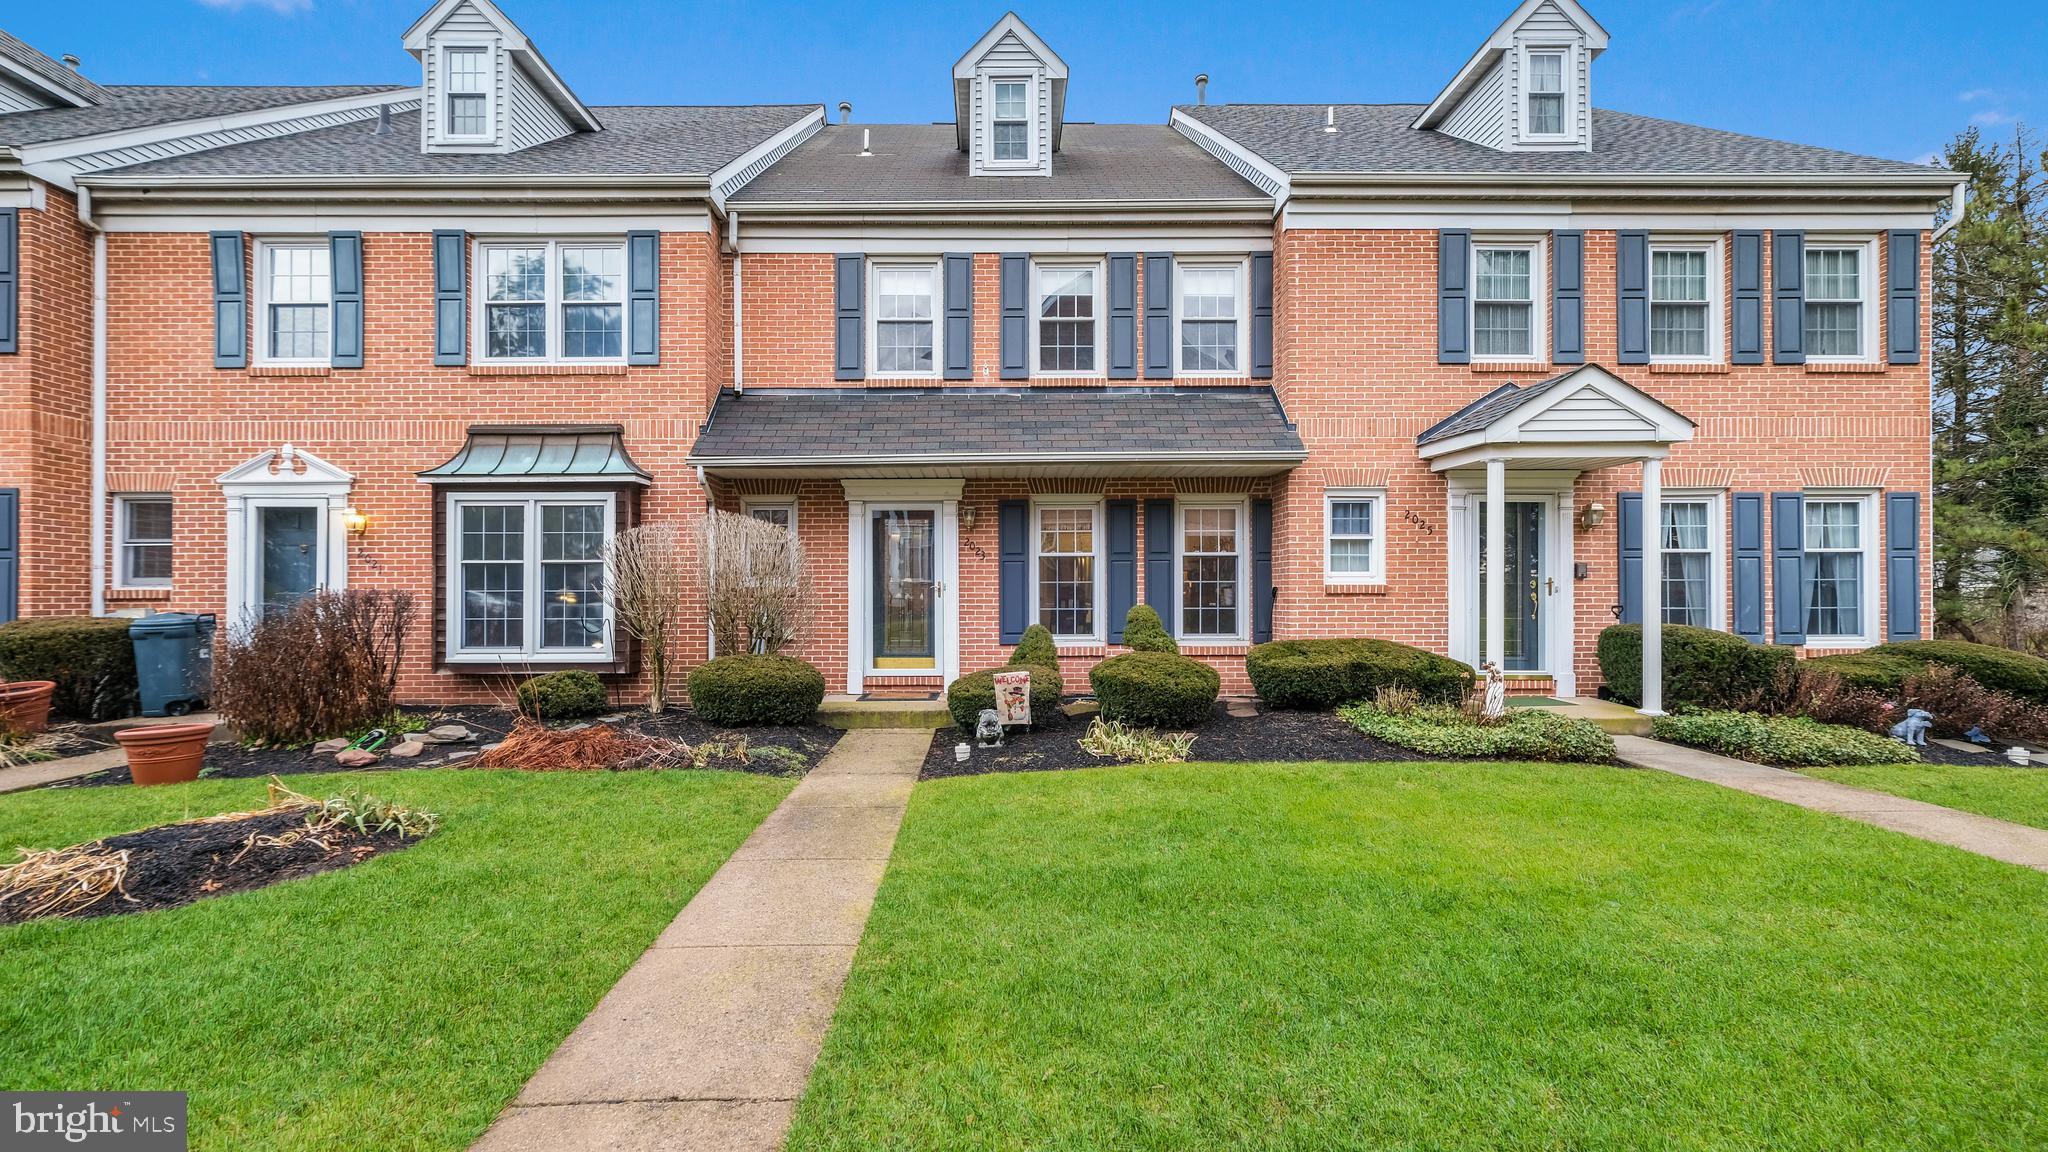 2023 RYANS RUN, LANSDALE, Pennsylvania 19446, 4 Bedrooms Bedrooms, ,3 BathroomsBathrooms,Townhouse,For Sale,2023 RYANS RUN,PAMC680598